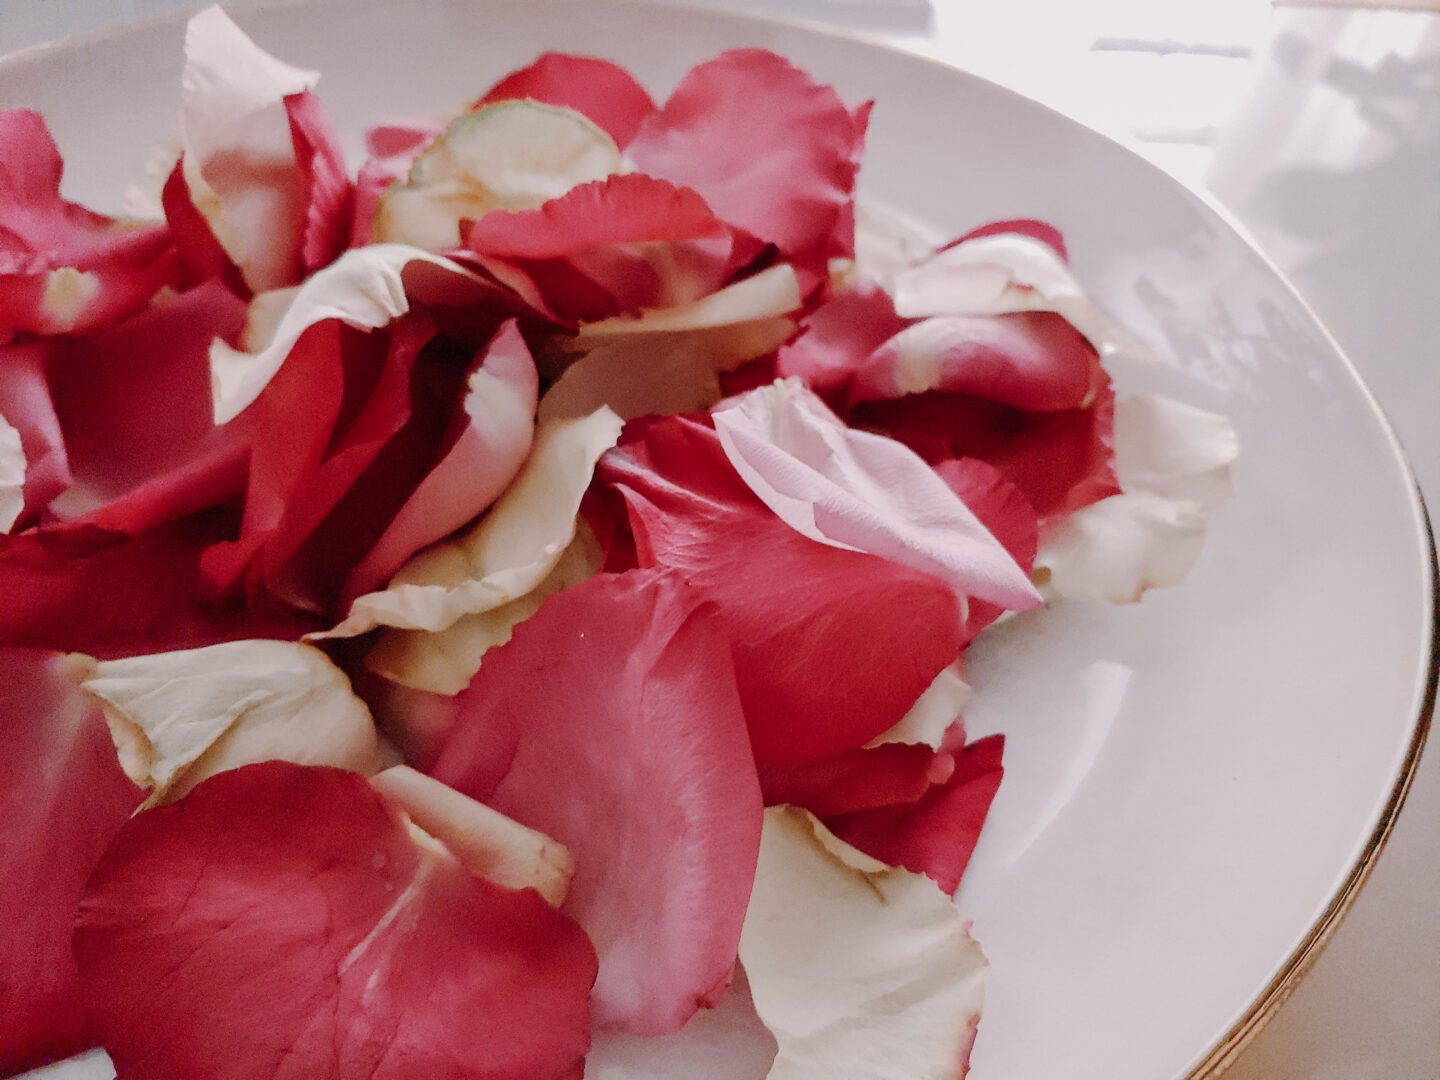 rose petals in a plate create an additional flower feature